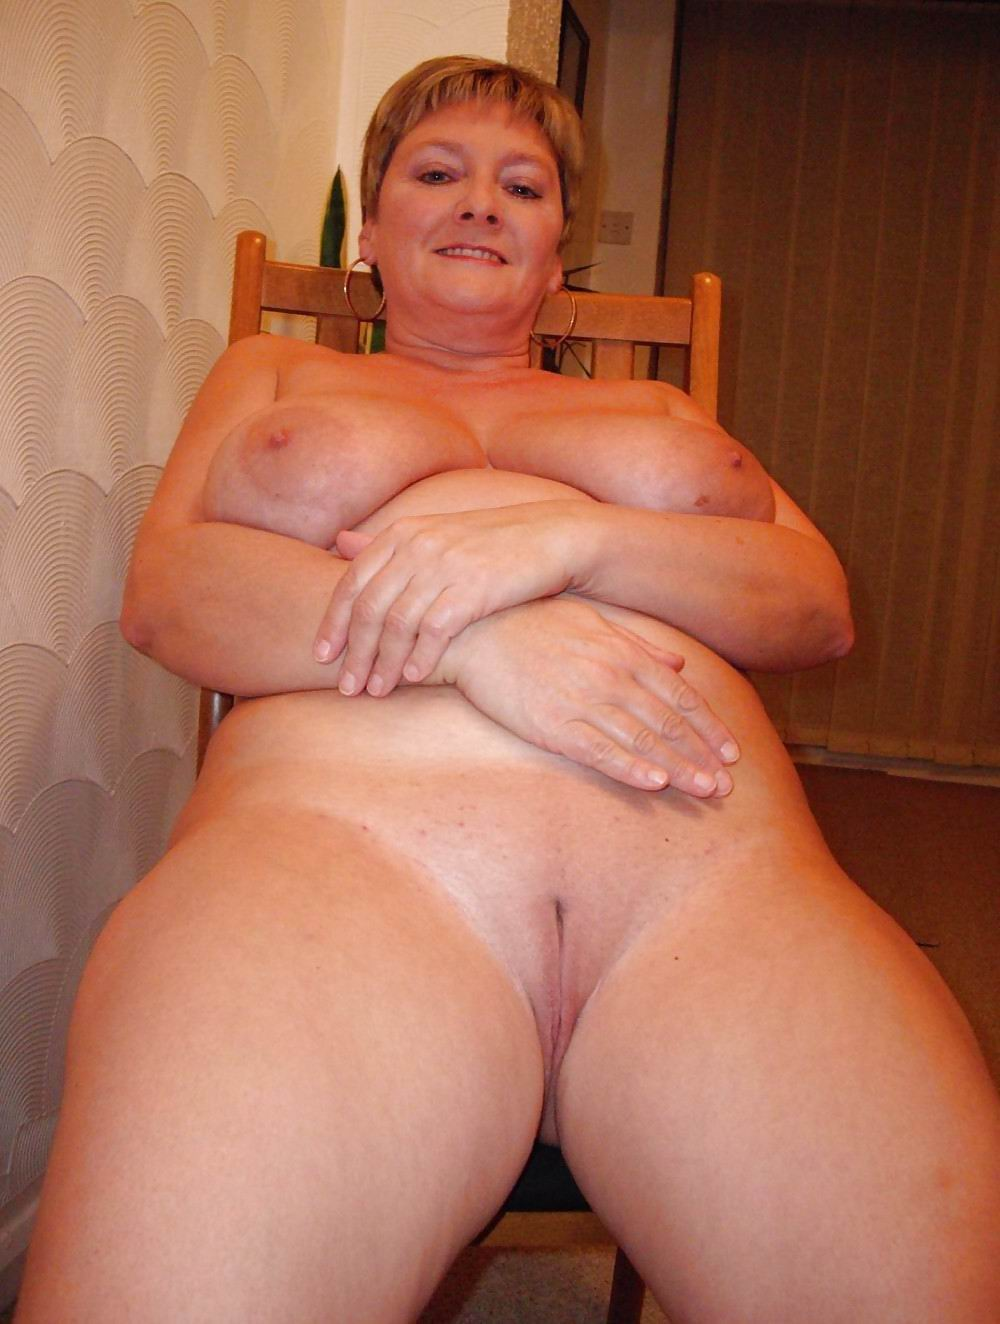 Granny big boobs nude